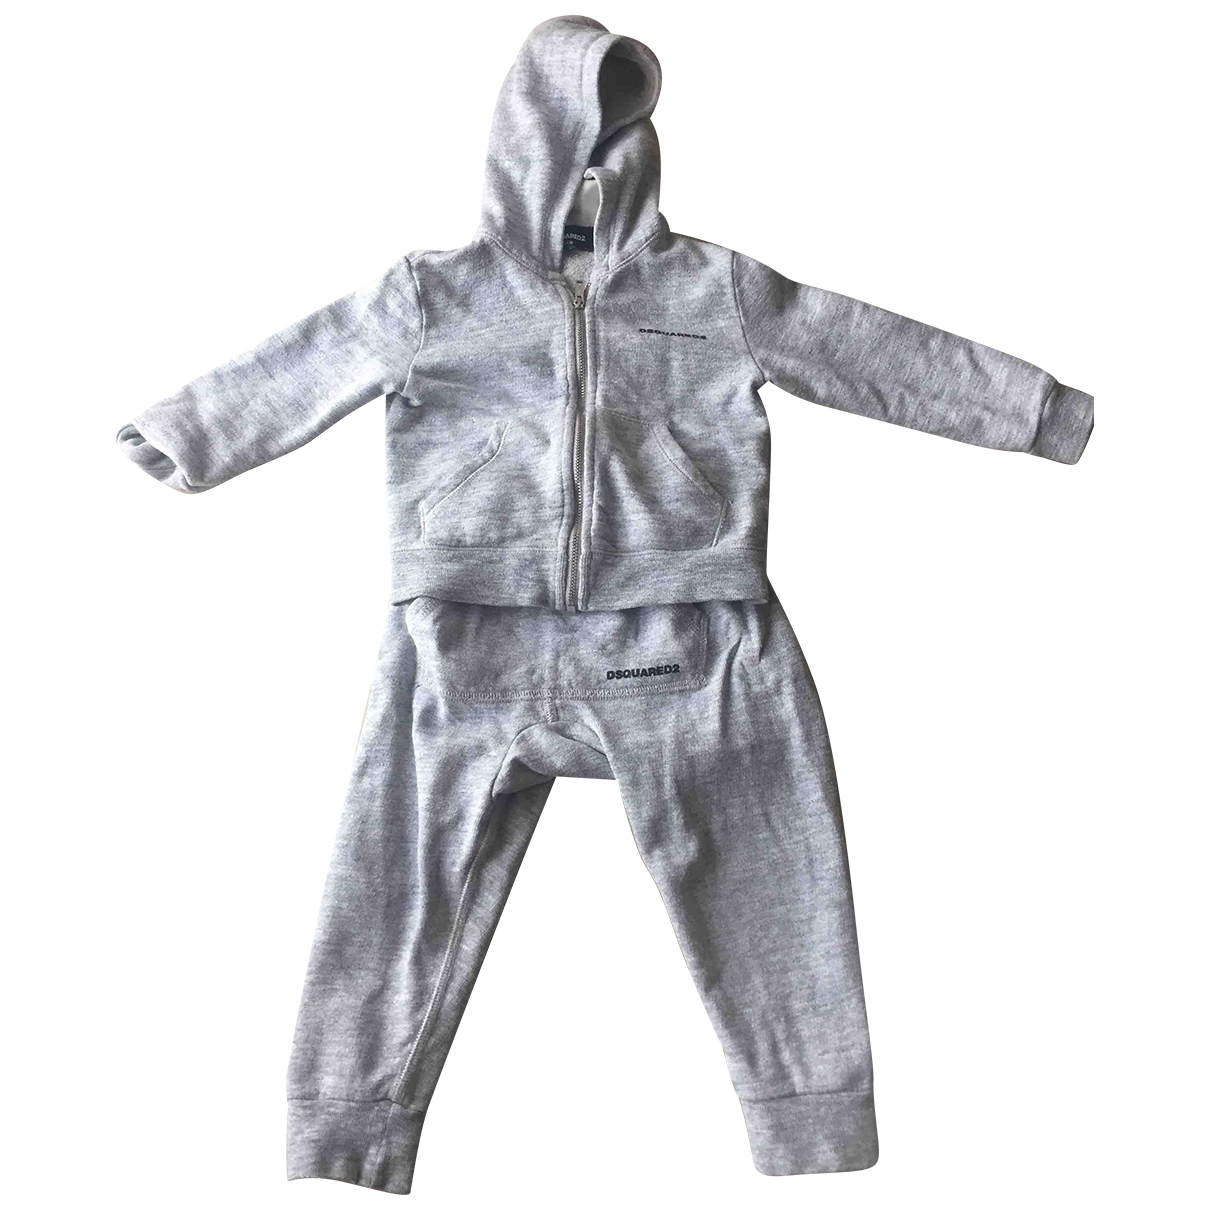 Dsquared2 \N Grey Cotton Outfits for Kids 2 years - up to 86cm FR